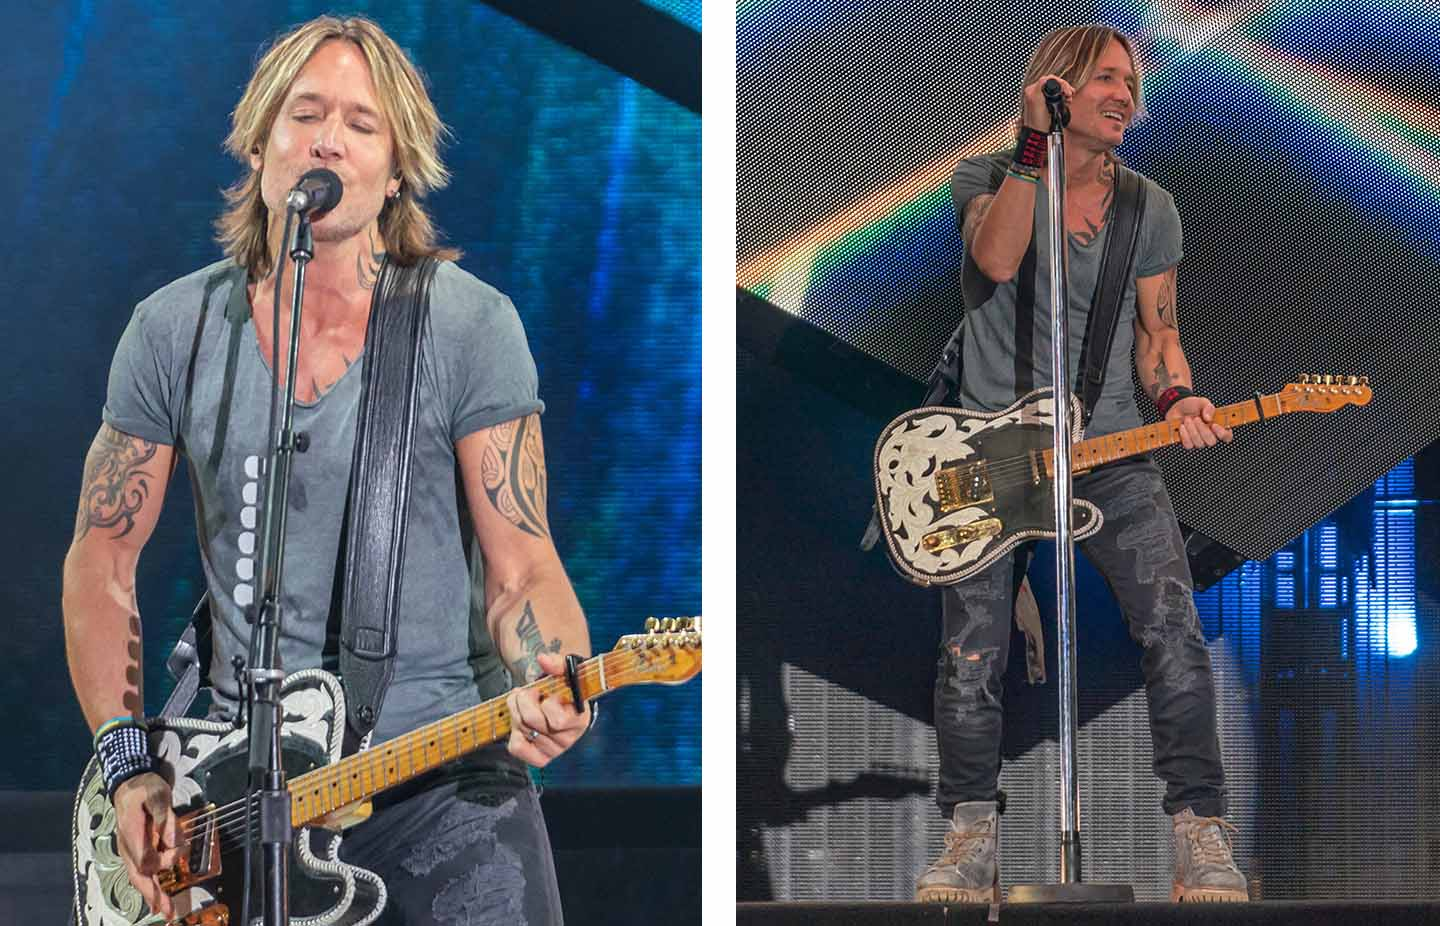 Keith Urban concert photo 2